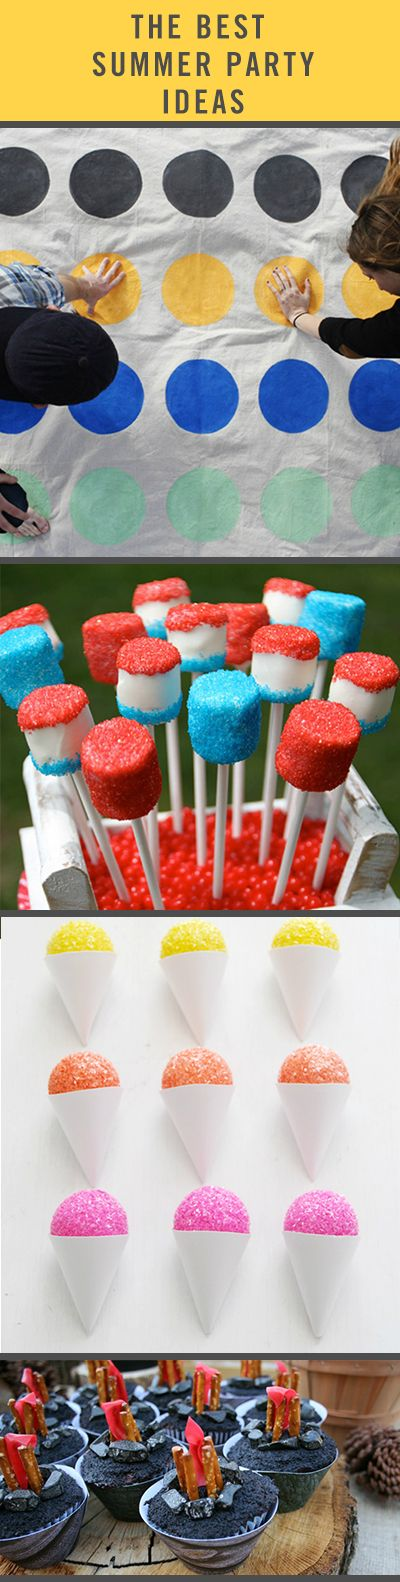 Summer Parties Food Ideas And Teenagers On Pinterest